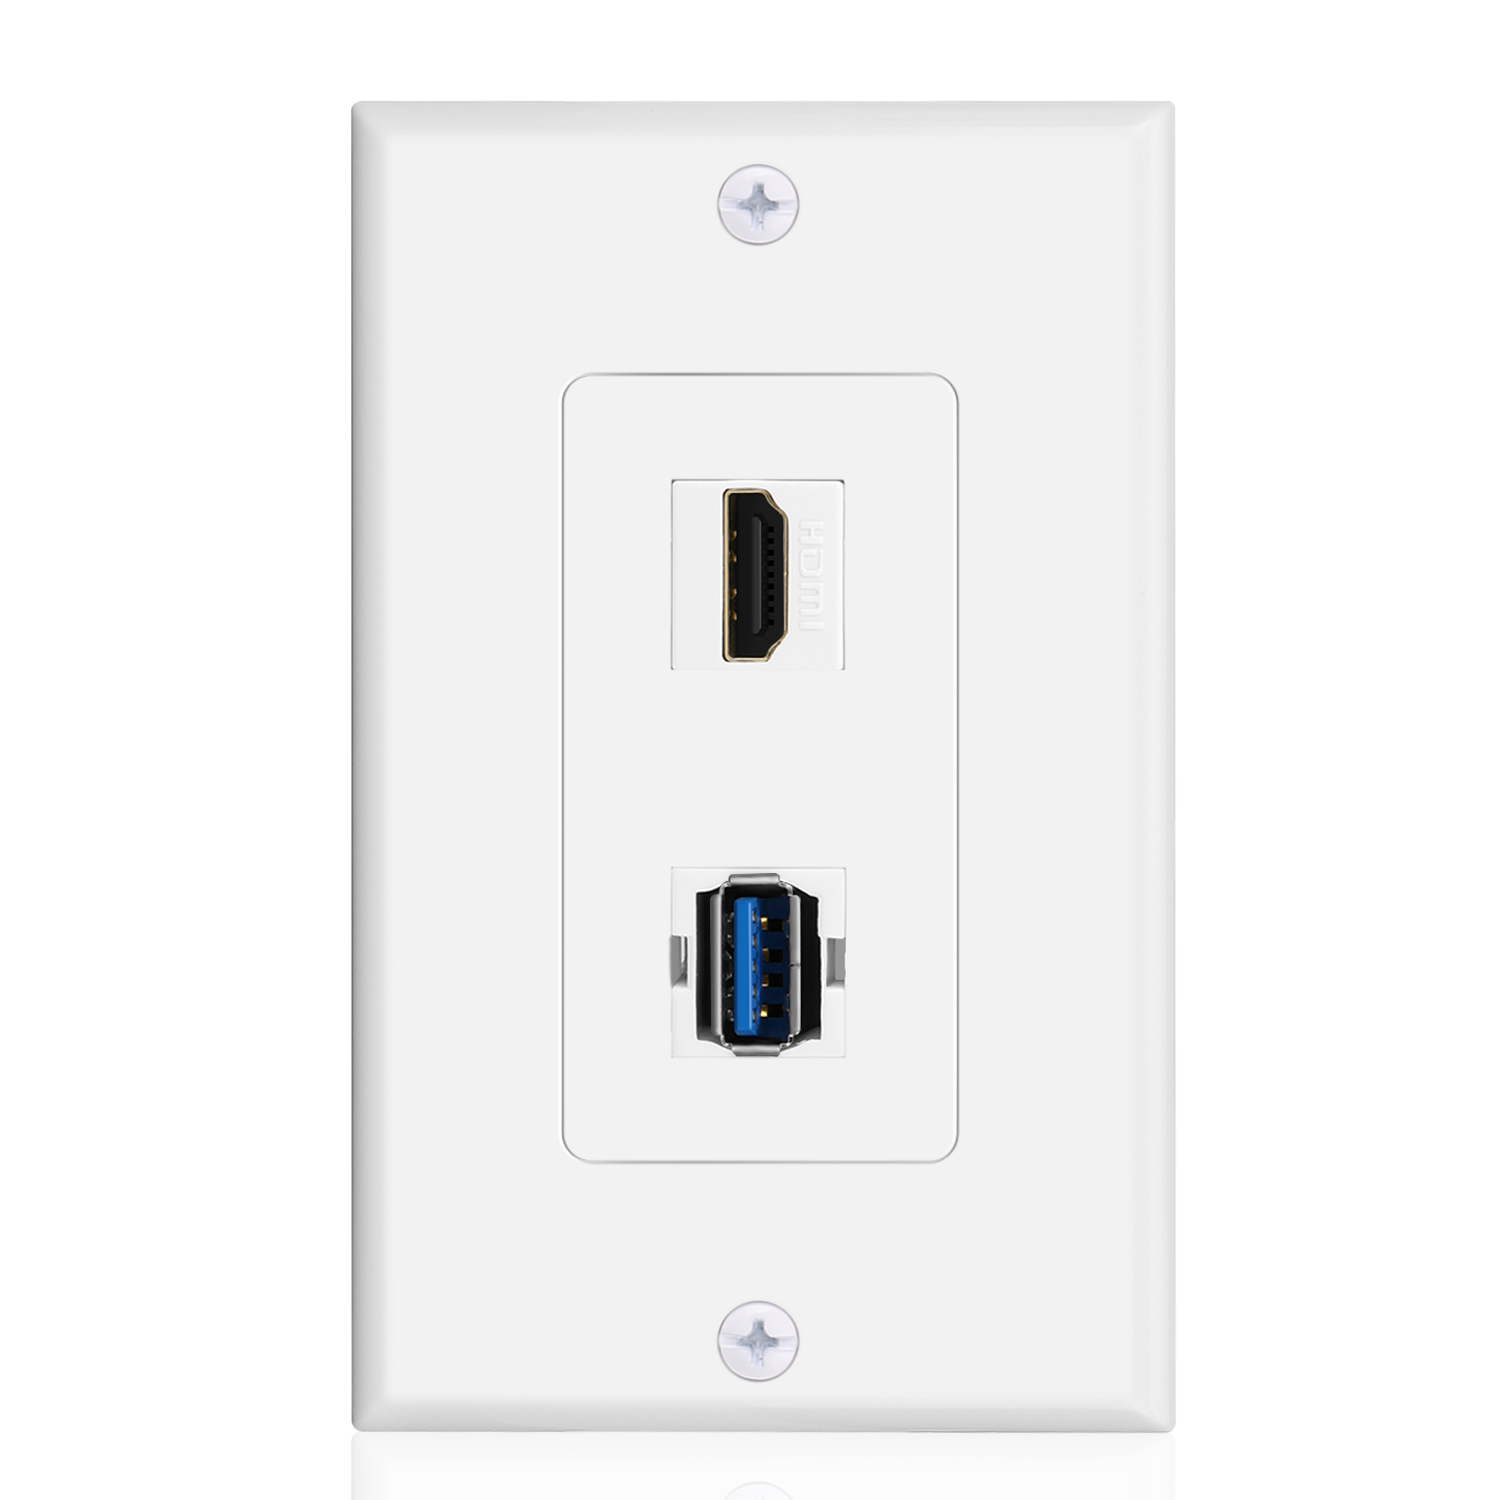 Usb Hdmi Outlet Wall Plate